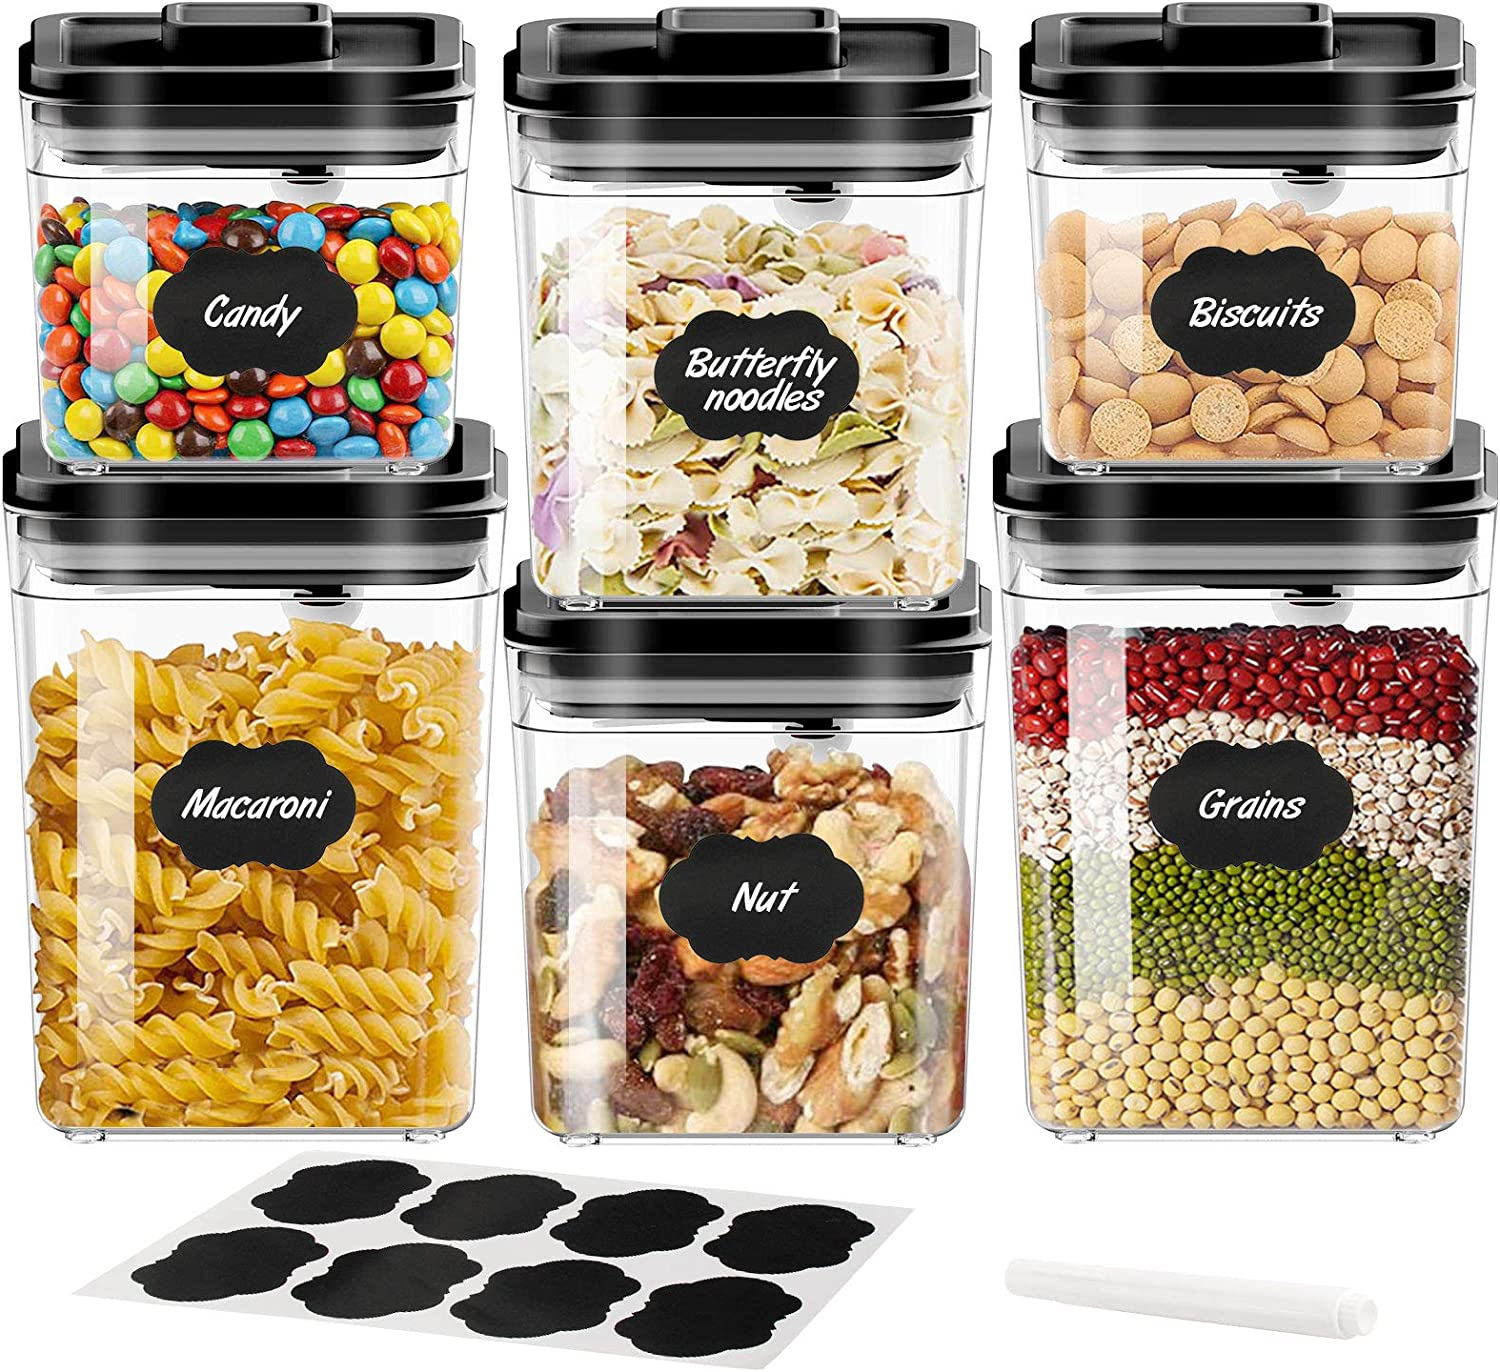 Samione Large Airtight Food Container Storage 6 Set 2.3L/1.7L/1L, Pop Container Bpa Free Cereal Food Organization [New Version] for Kitchen Pantry Sugar,Cereal,Flour,Snacks,Baking